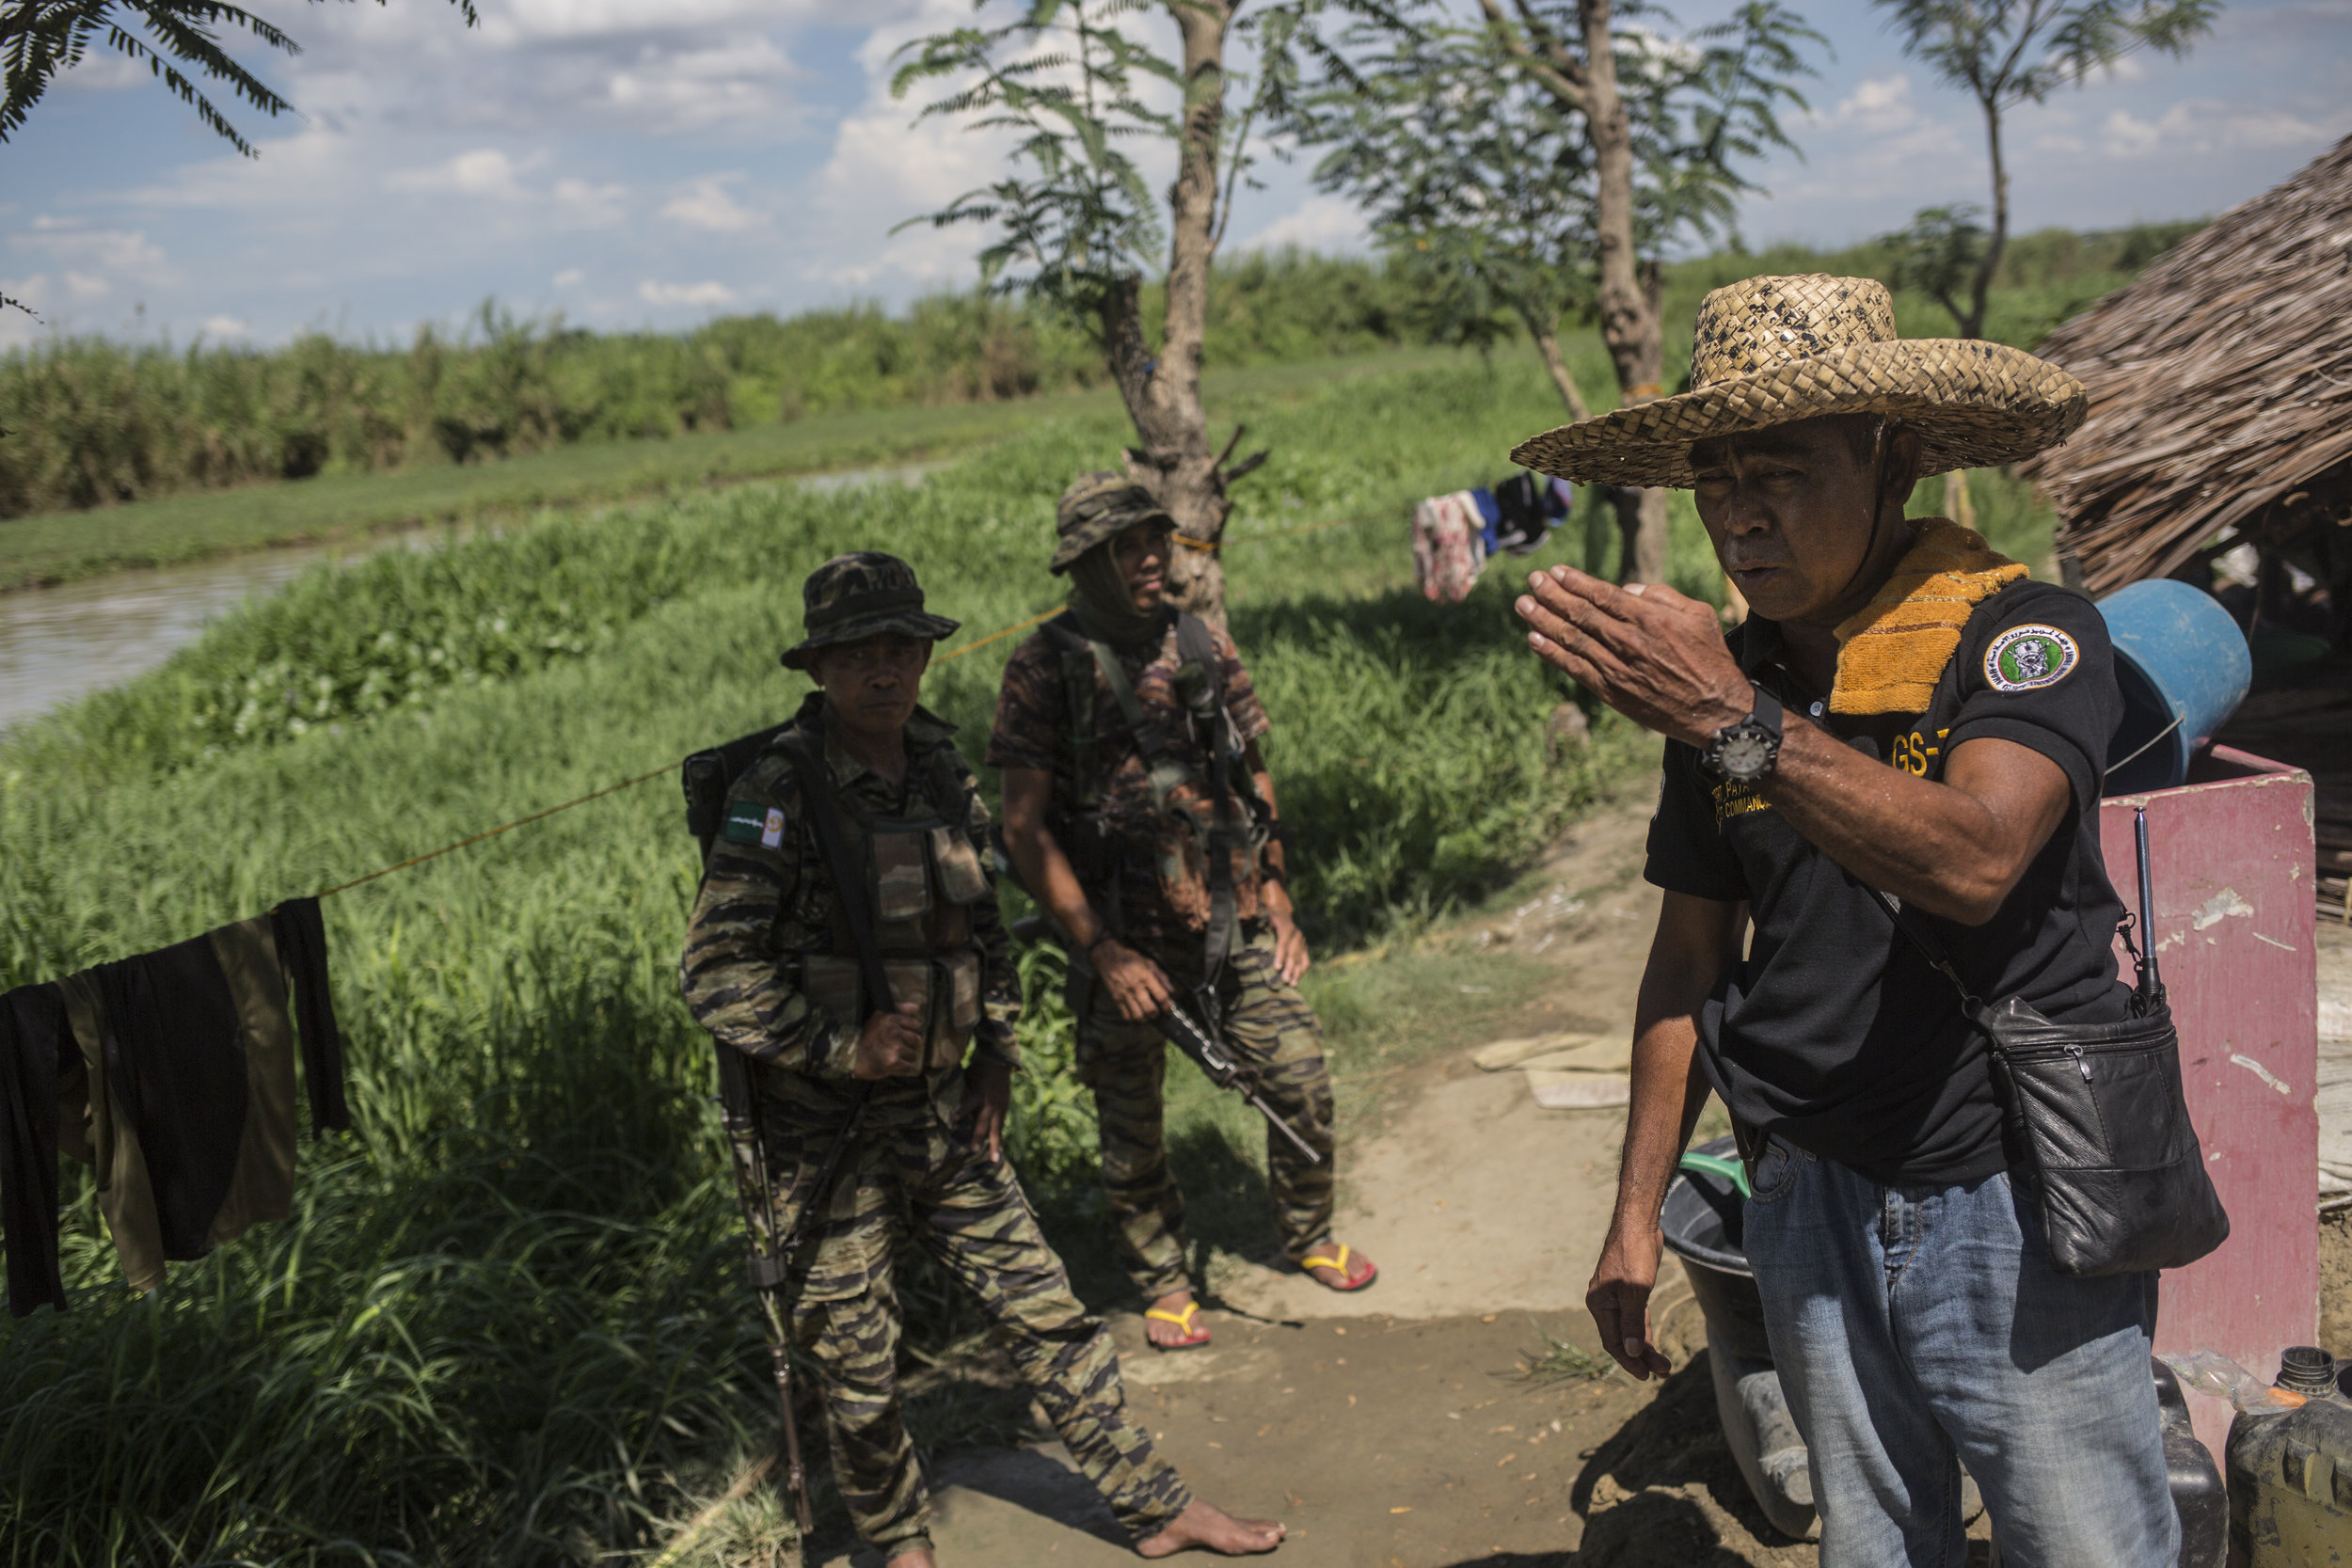 ISIS_In_The_Philippines (6 of 24).jpg